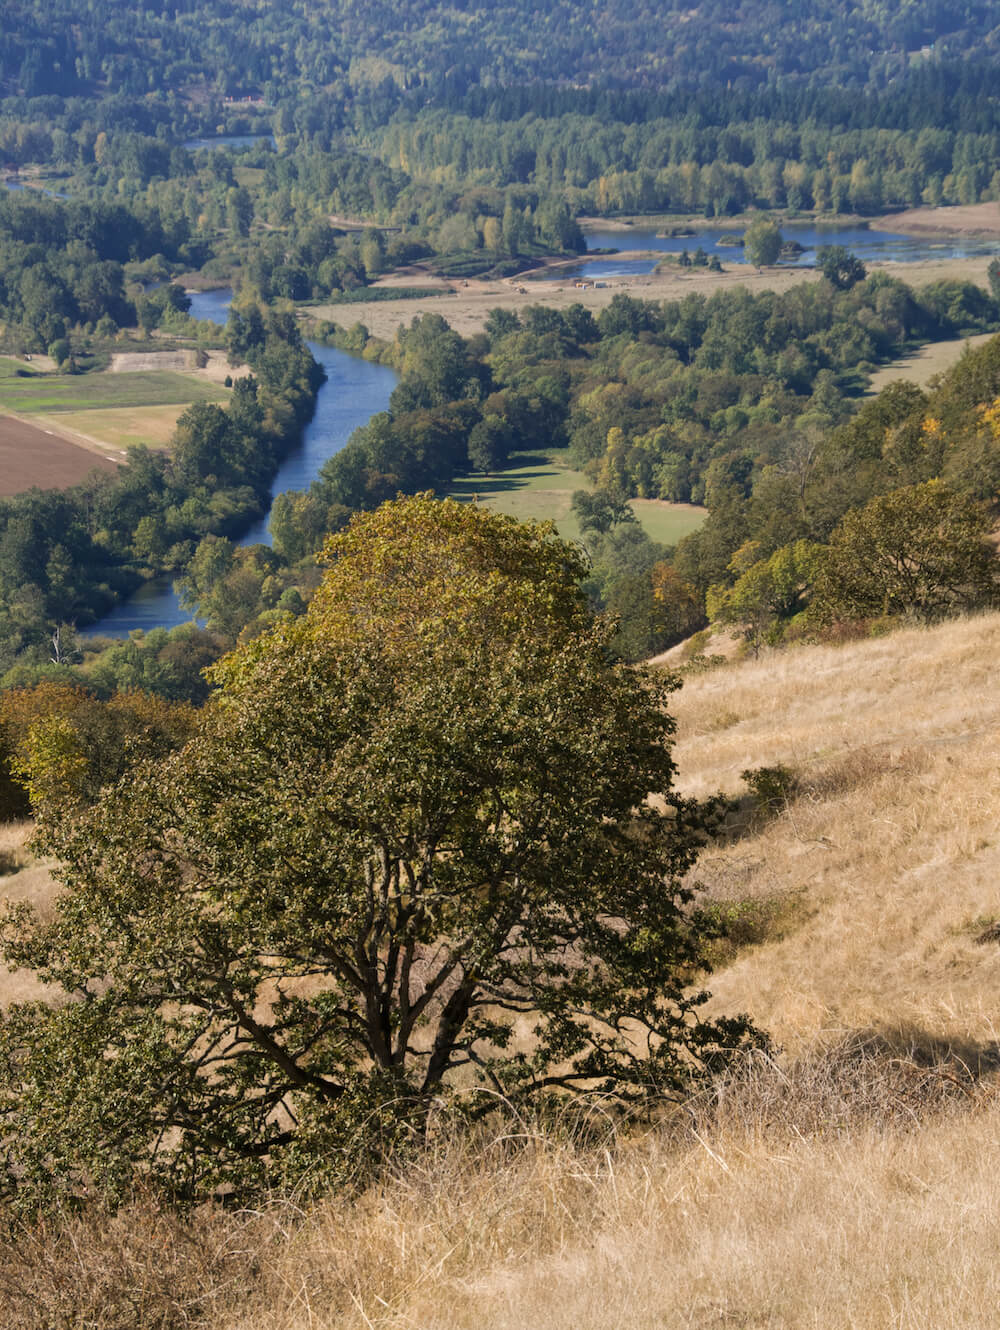 Dry grasslands overlooking a river with lots of green trees in Mt Pisgah